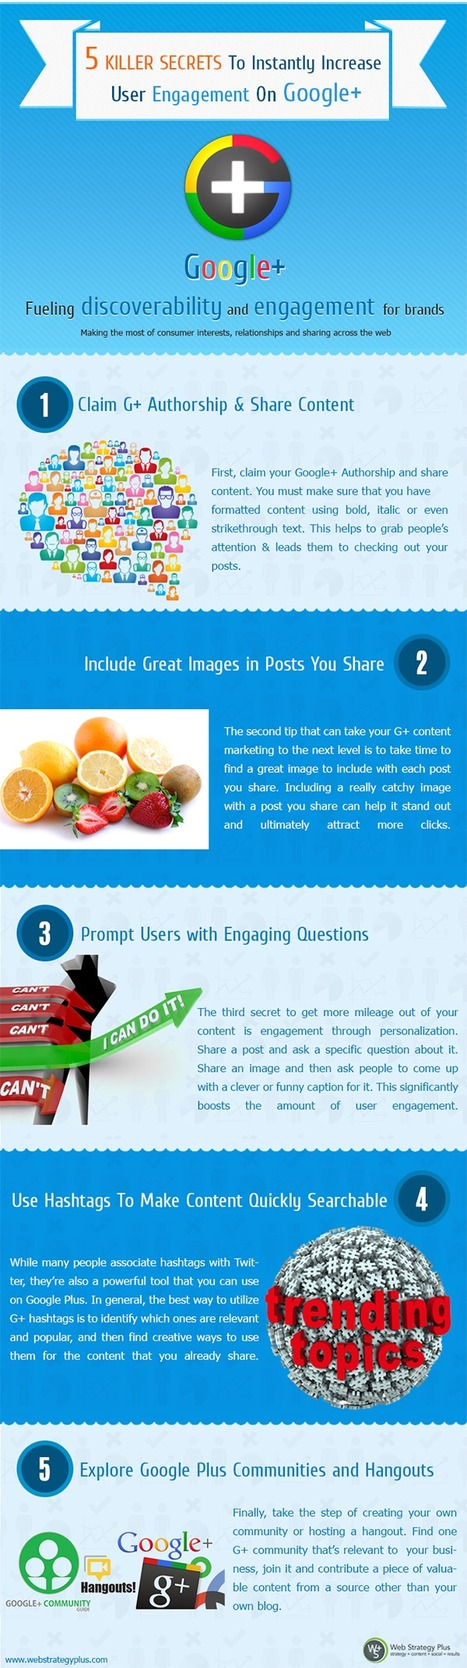 5 Killer Secrets to Instantly Increase Engagement on Google Plus [infographic] | Social Marketing Revolution | Scoop.it